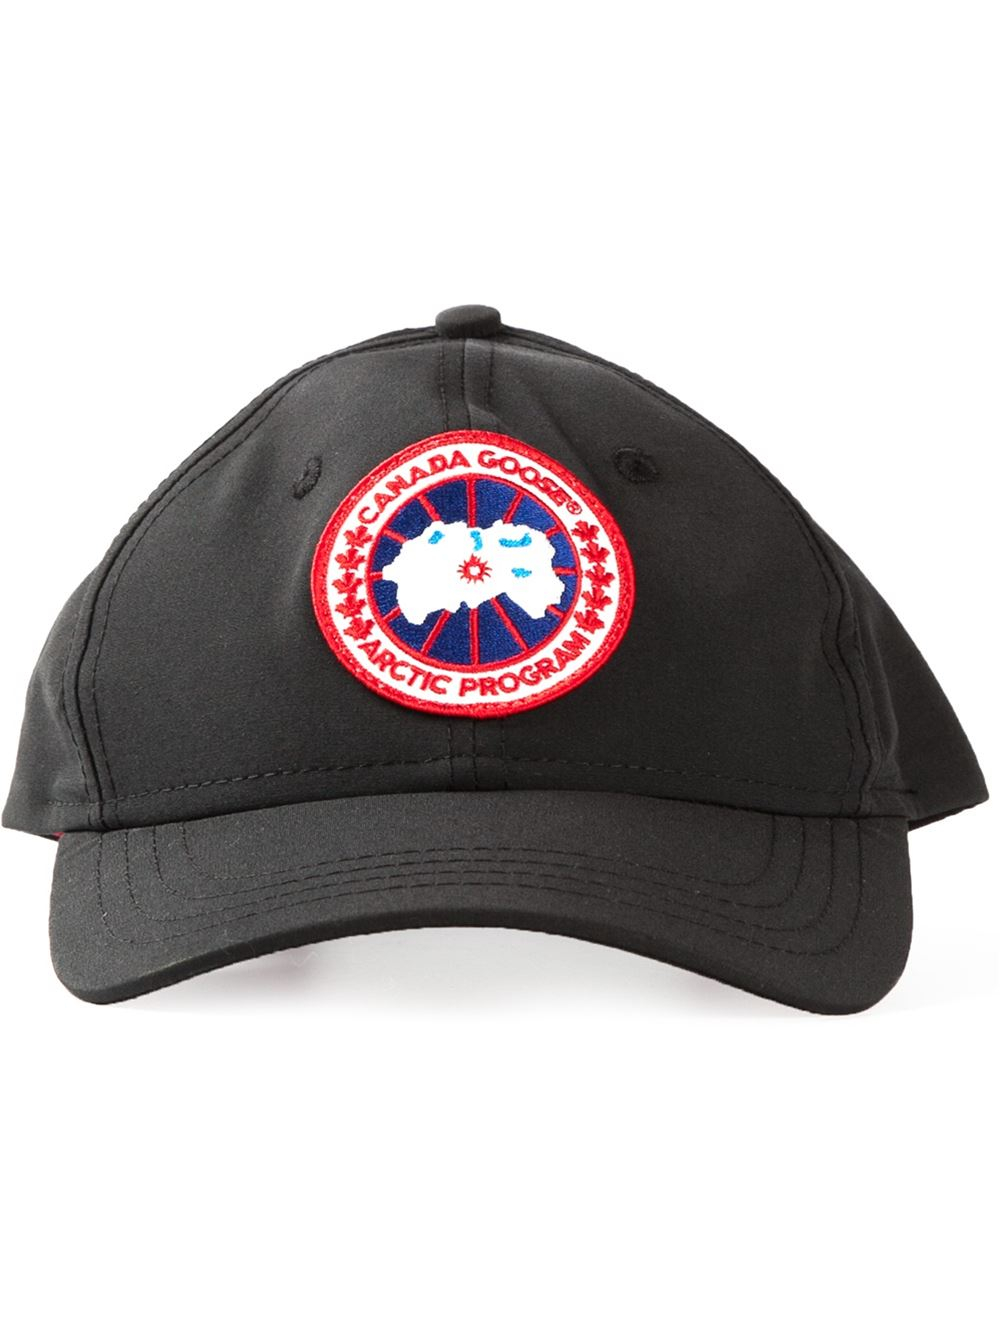 Lyst - Canada Goose Ball Cap in Black for Men 00bf73bc75cb